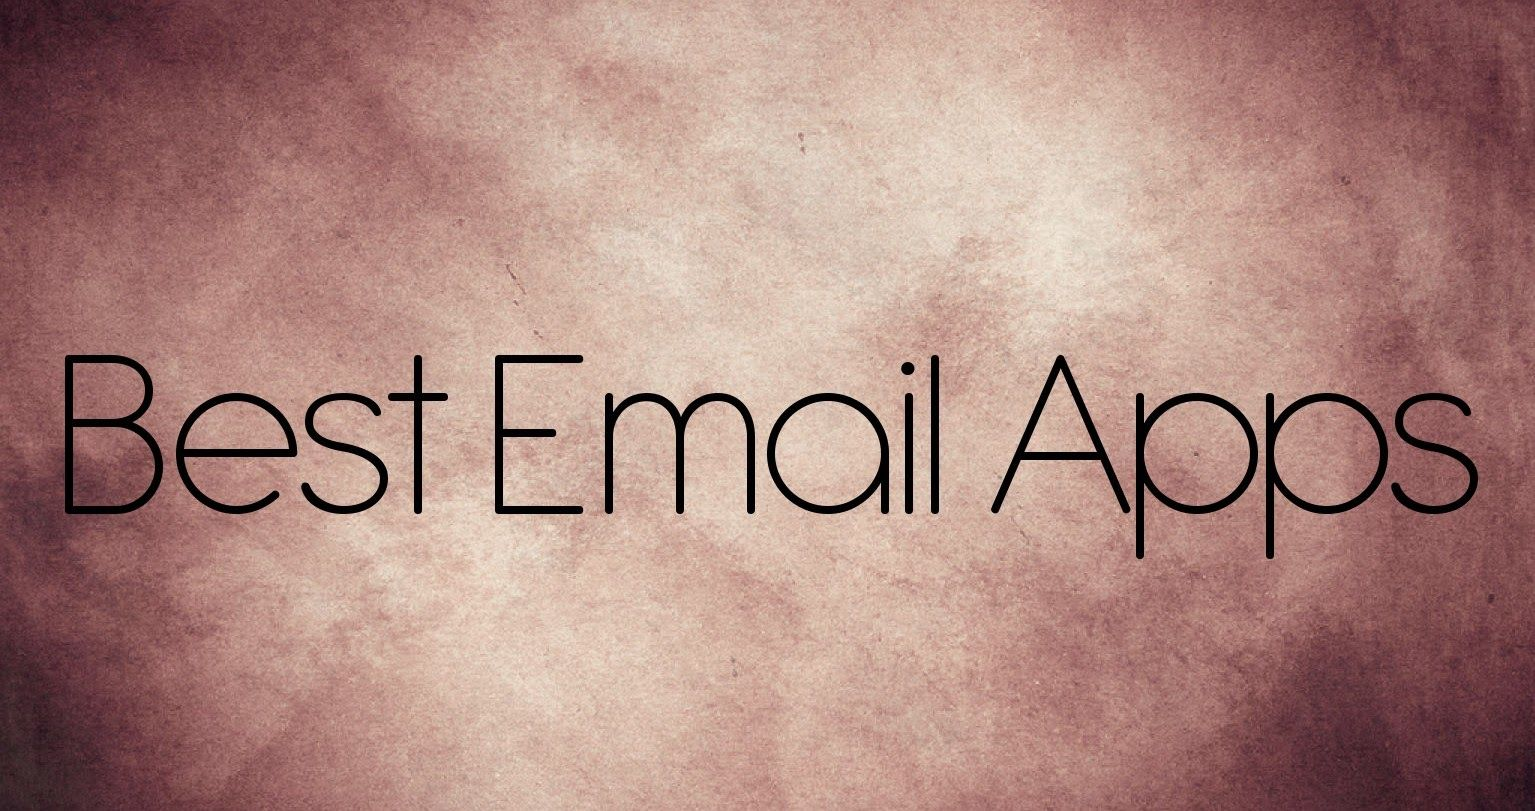 8 Best Email Apps for iPhone & iPad 2019 Iphone apps